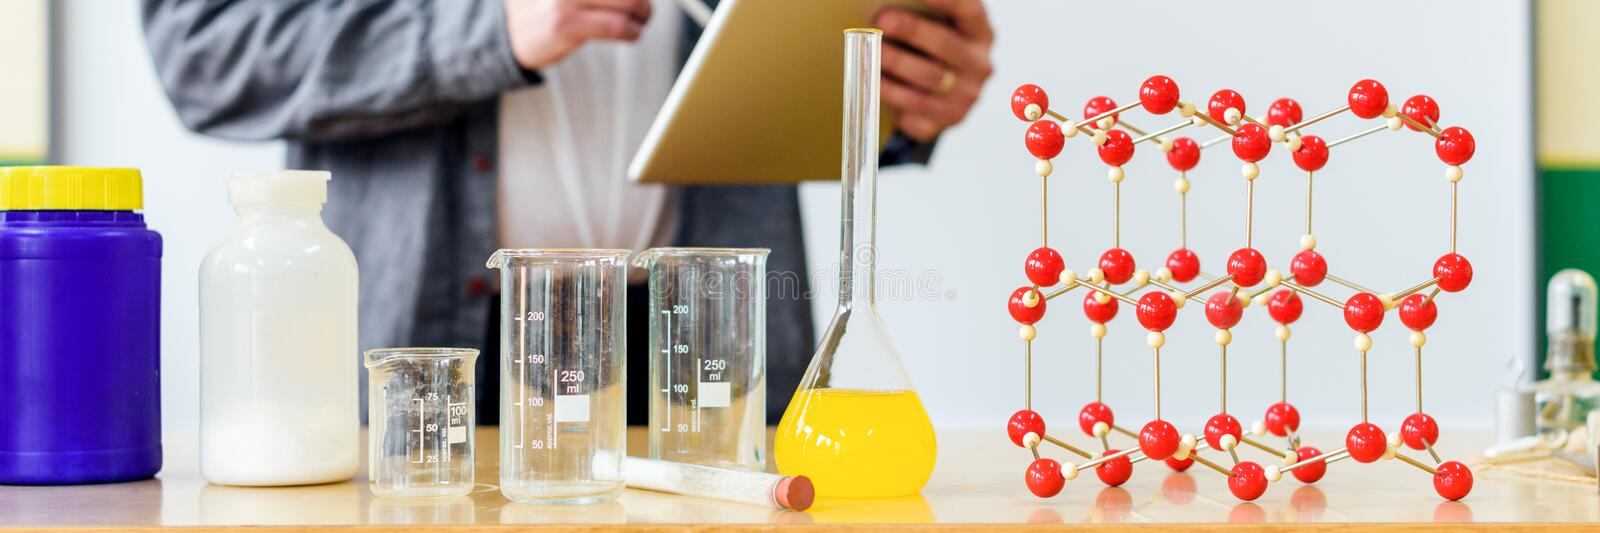 Teacher using digital tablet to teach students in chemistry class. Education, VR, Tutoring, New Technologies and Teaching Methods. stock photo